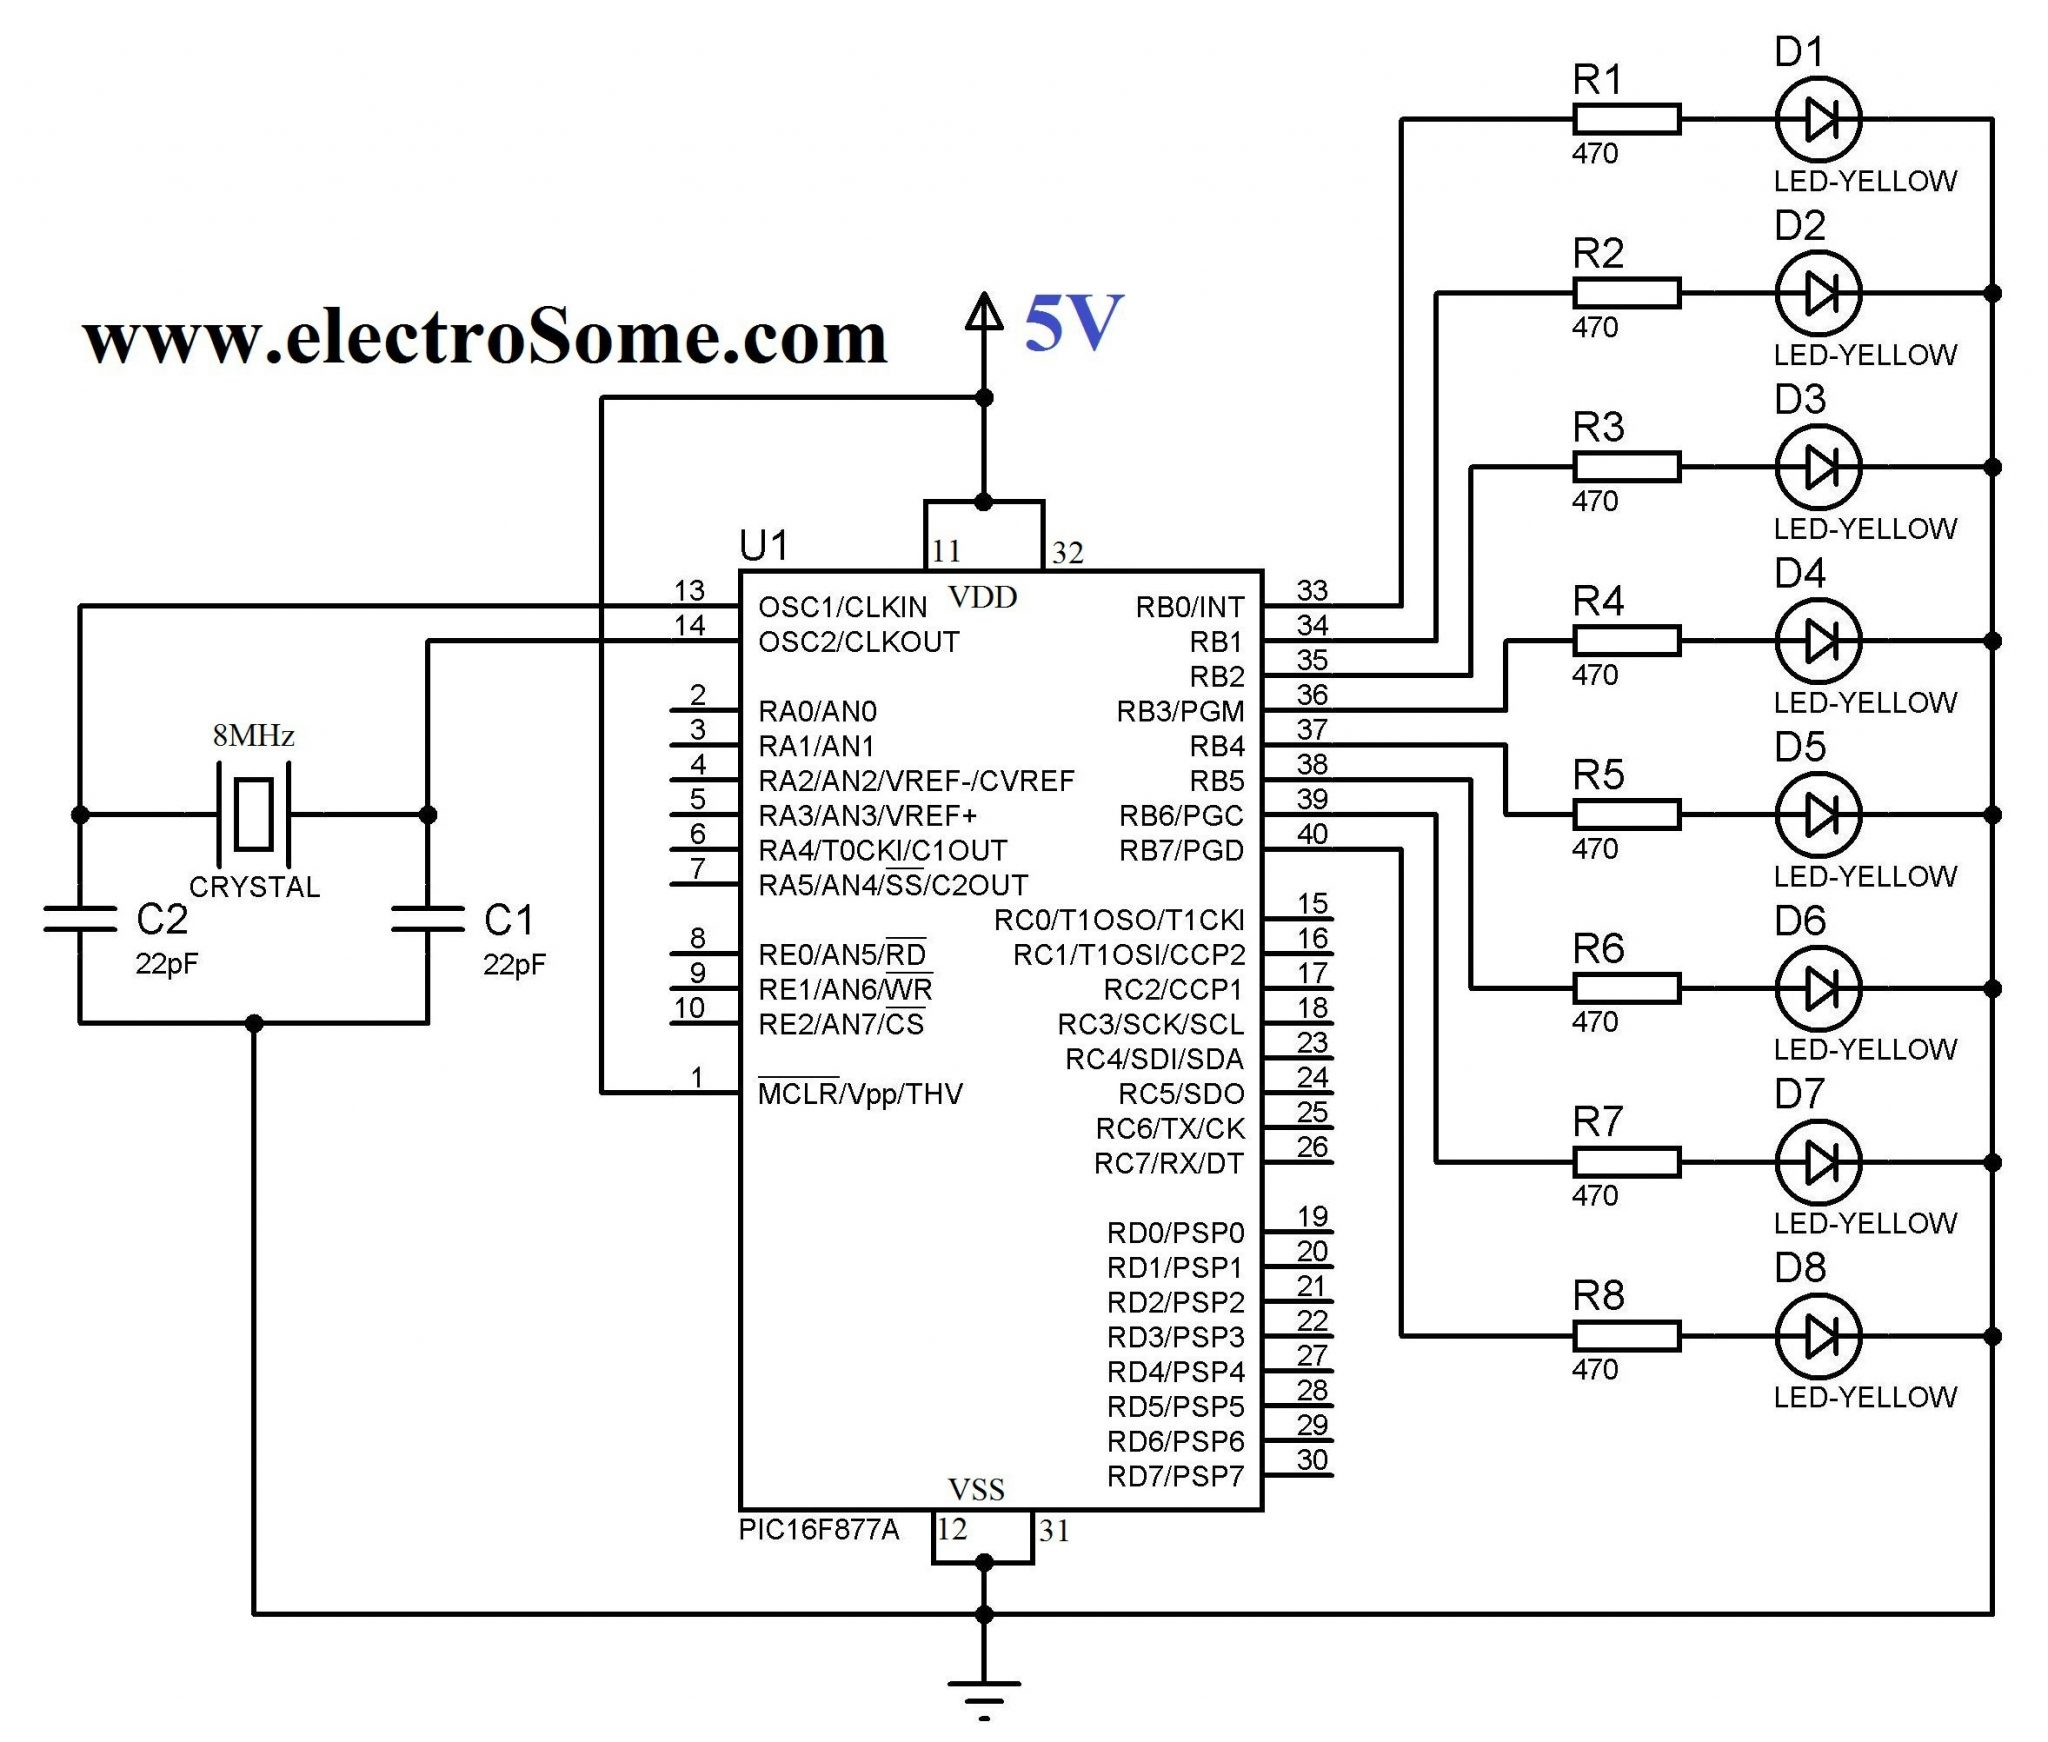 Blinking Led Using Pic Microcontroller